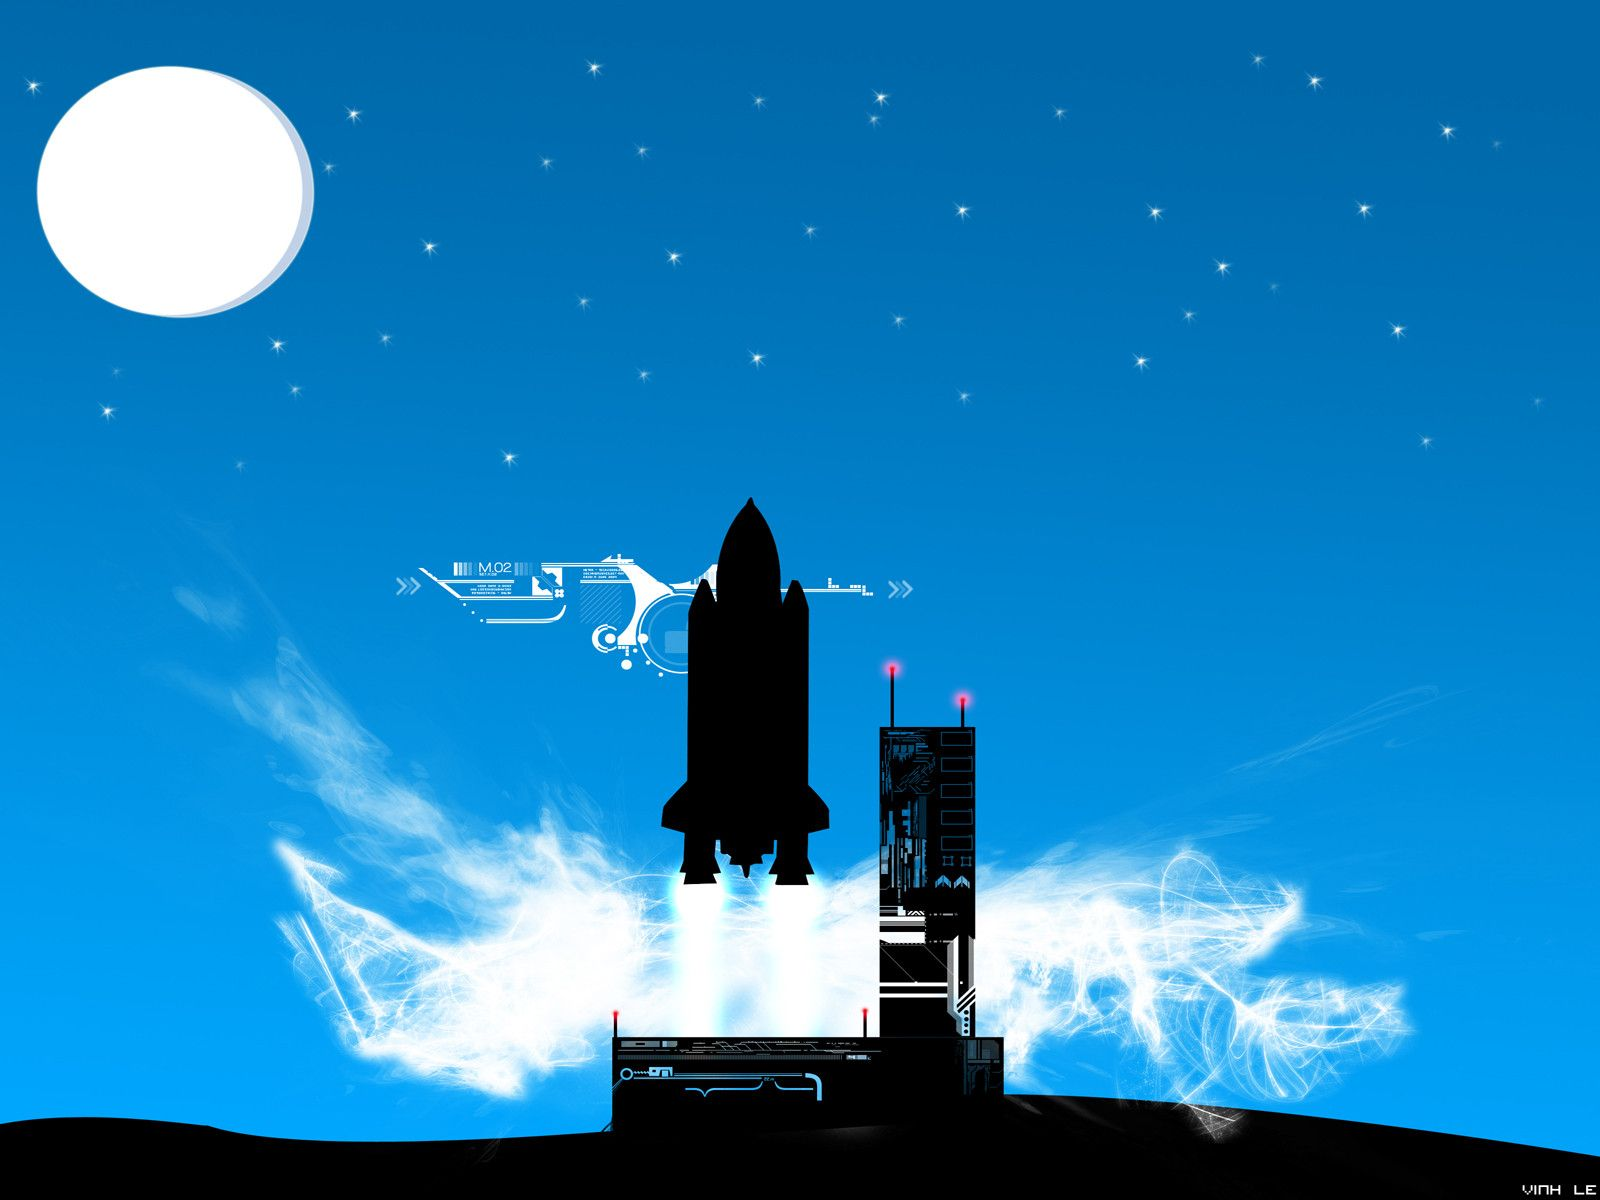 Download Rocket Ship Wallpaper Gallery